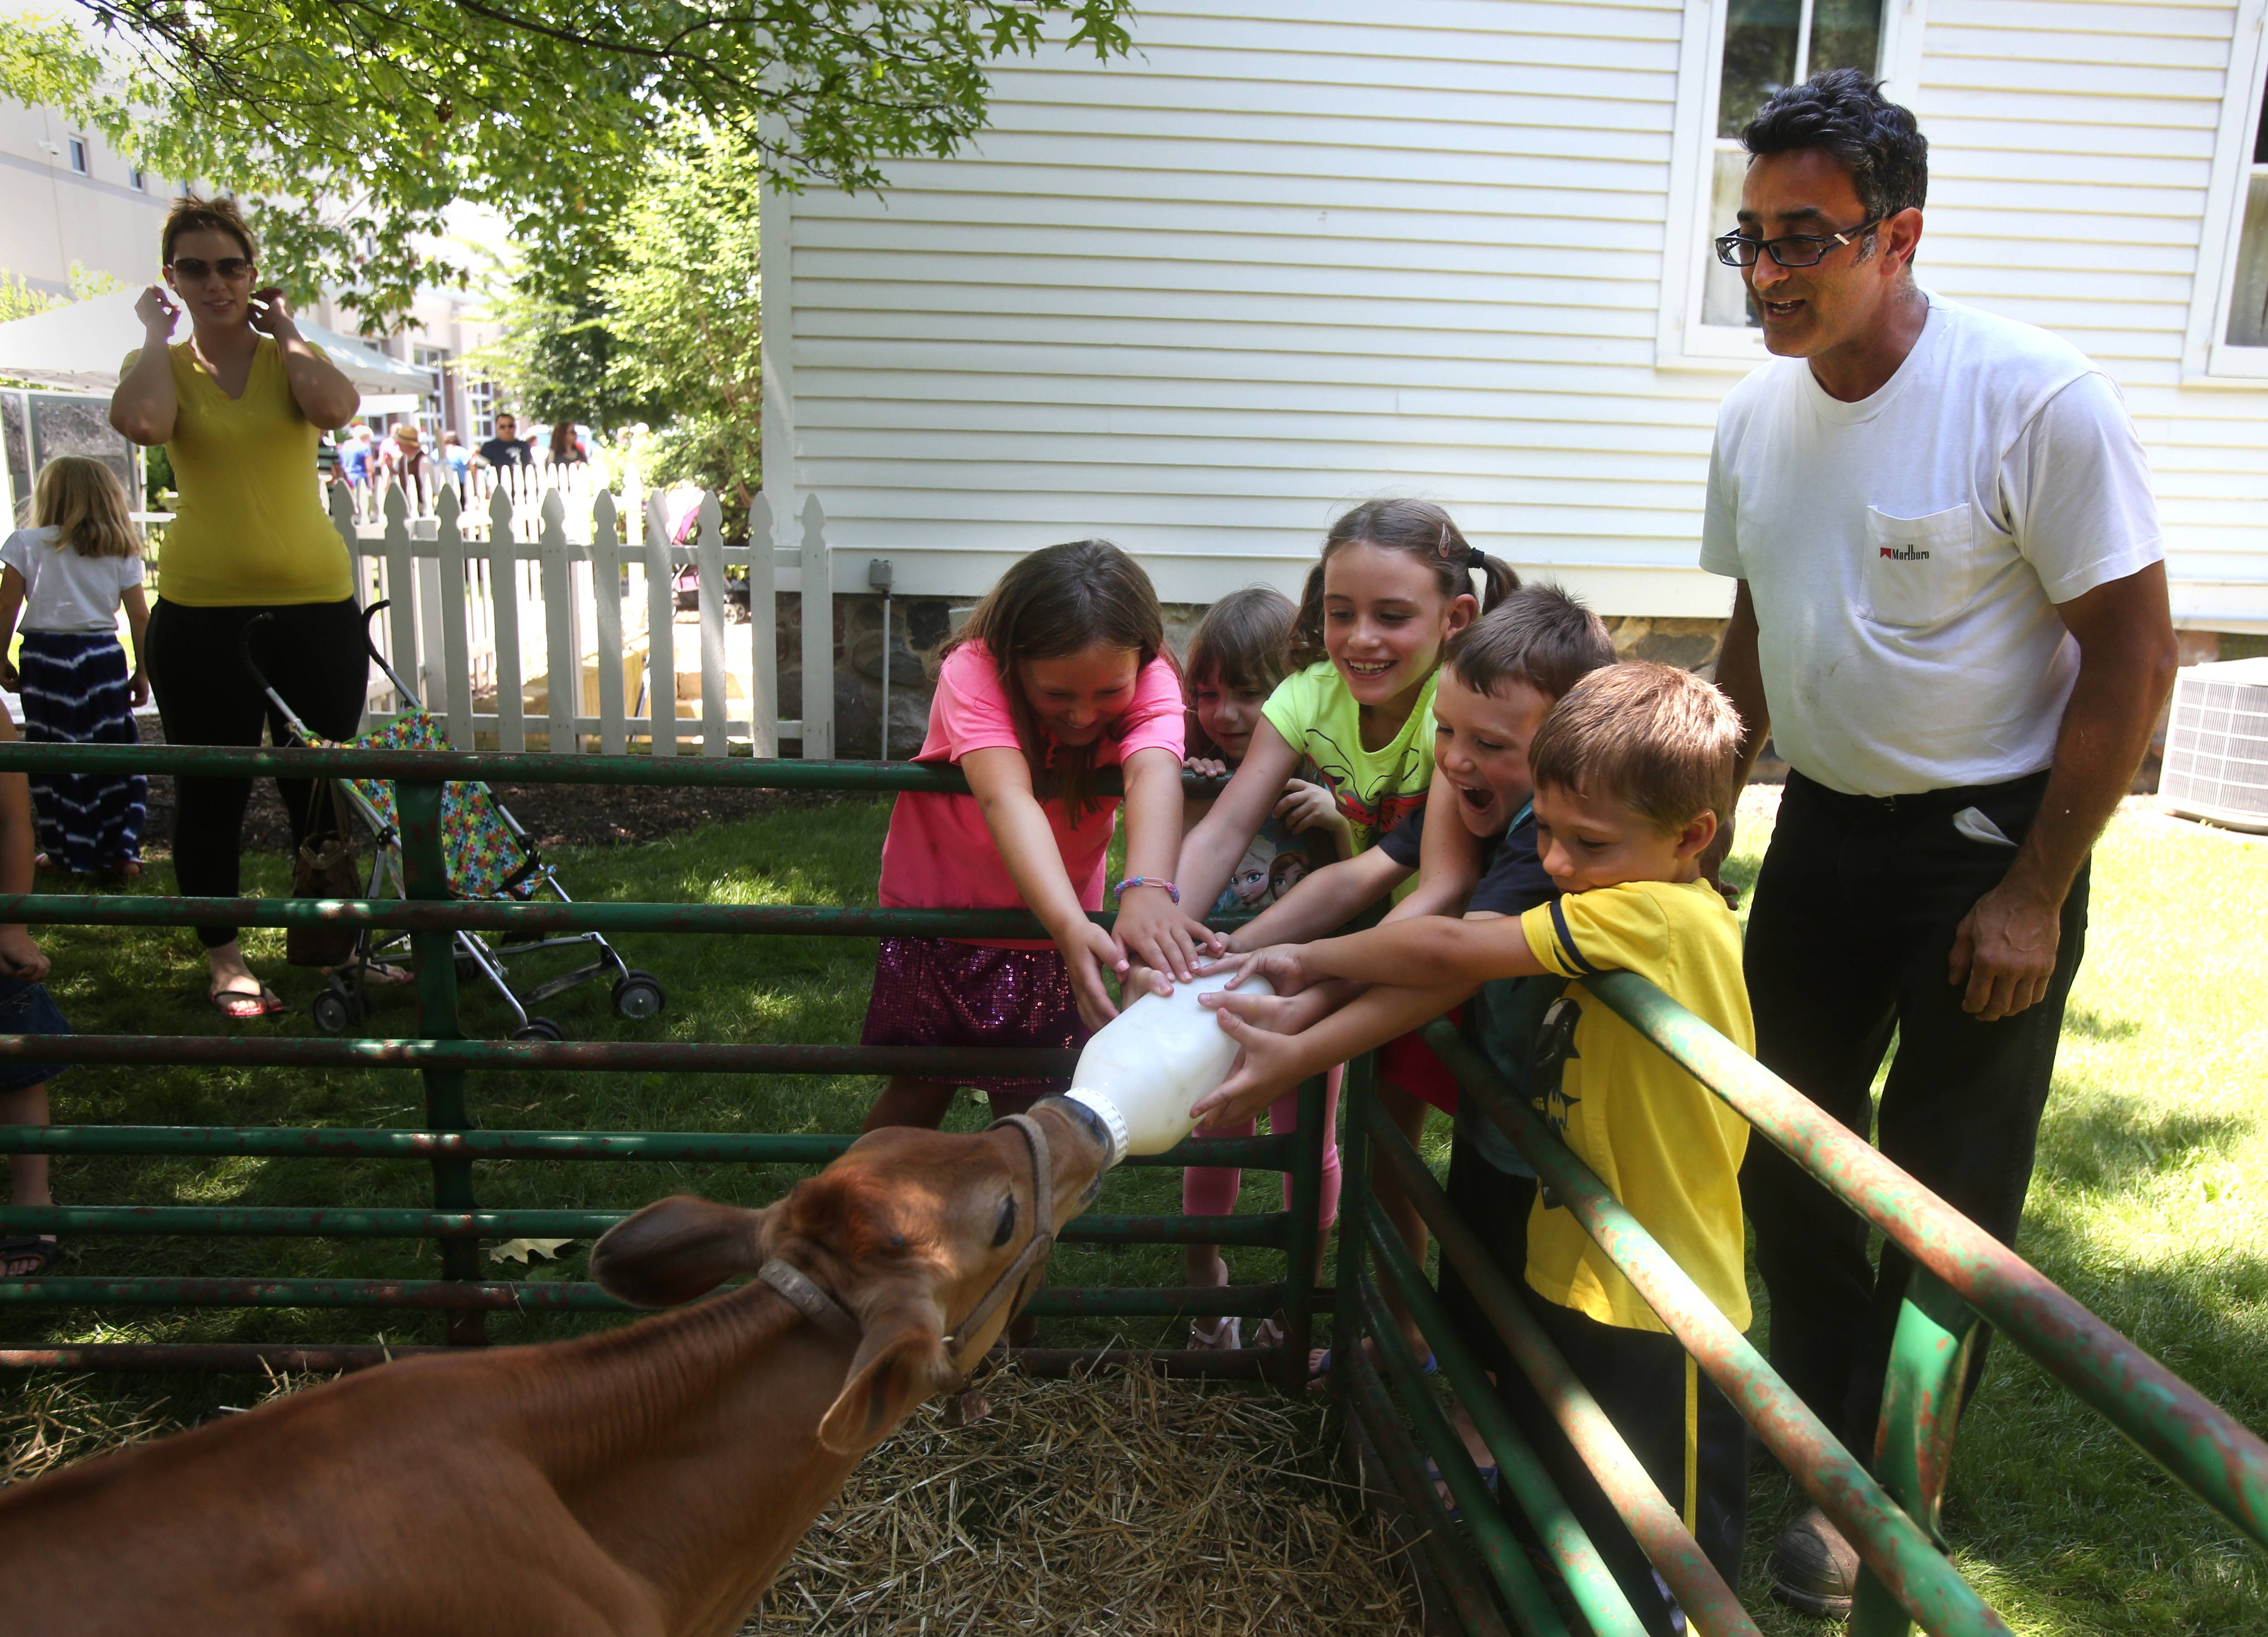 Andreas Georgiades oversees calf feeding Sunday during Dairy Day at the Elk Grove Historical Museum. Holding the bottle are Amber Heishman, 8, Olivia Hopkins, 8, Mason Hopkins, 6 and Zach Cohen, 6, all of Elk Grove Village.